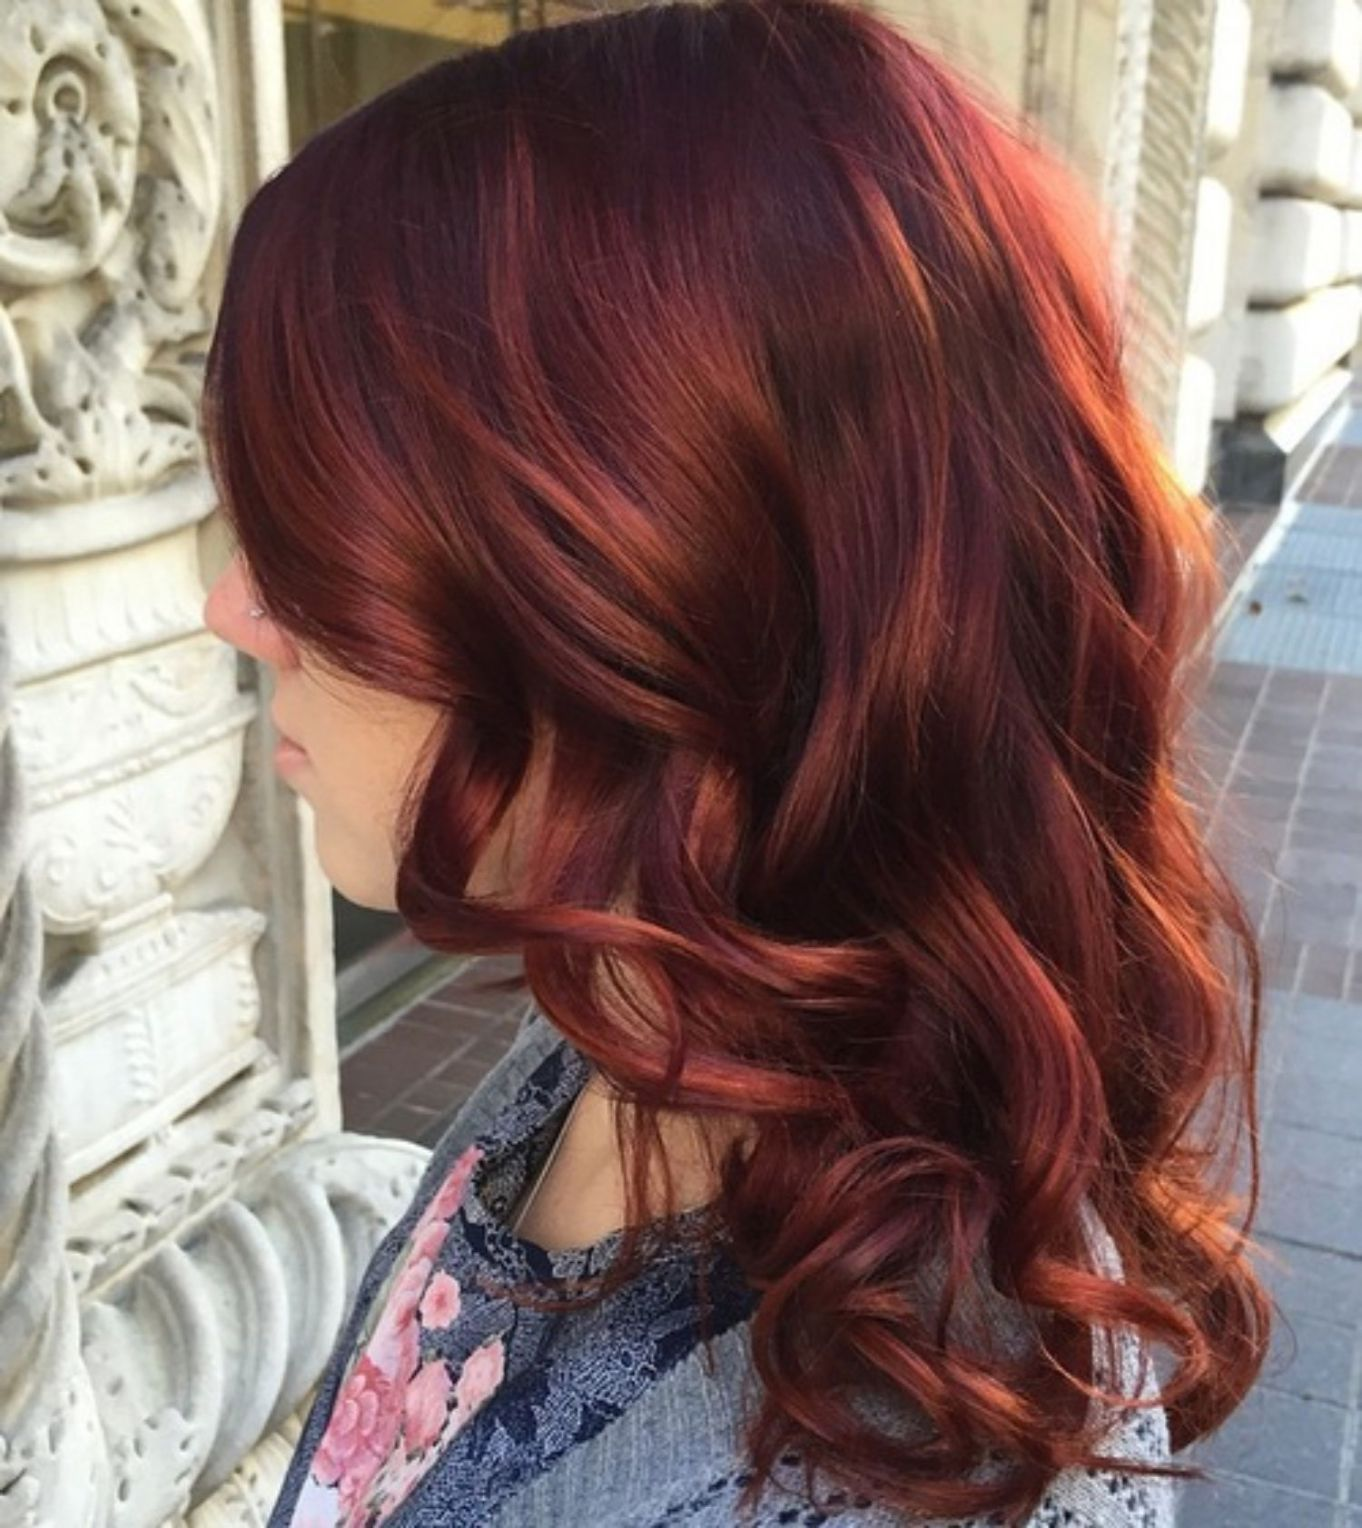 Auburn Hair Colors to Emphasize Your Individuality in Hair